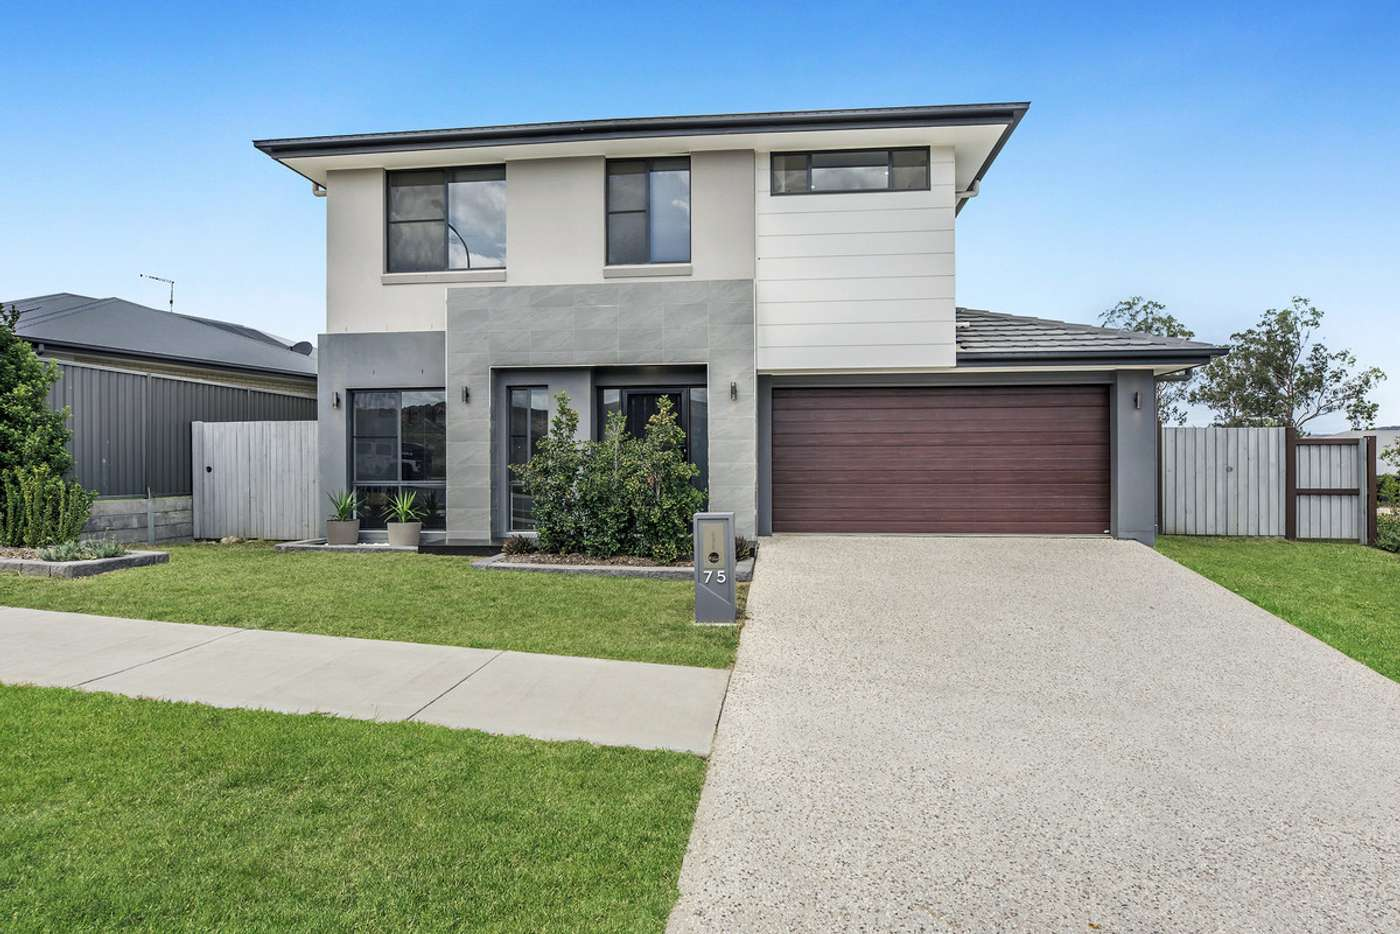 Main view of Homely house listing, 75 Greenview Avenue, South Ripley QLD 4306